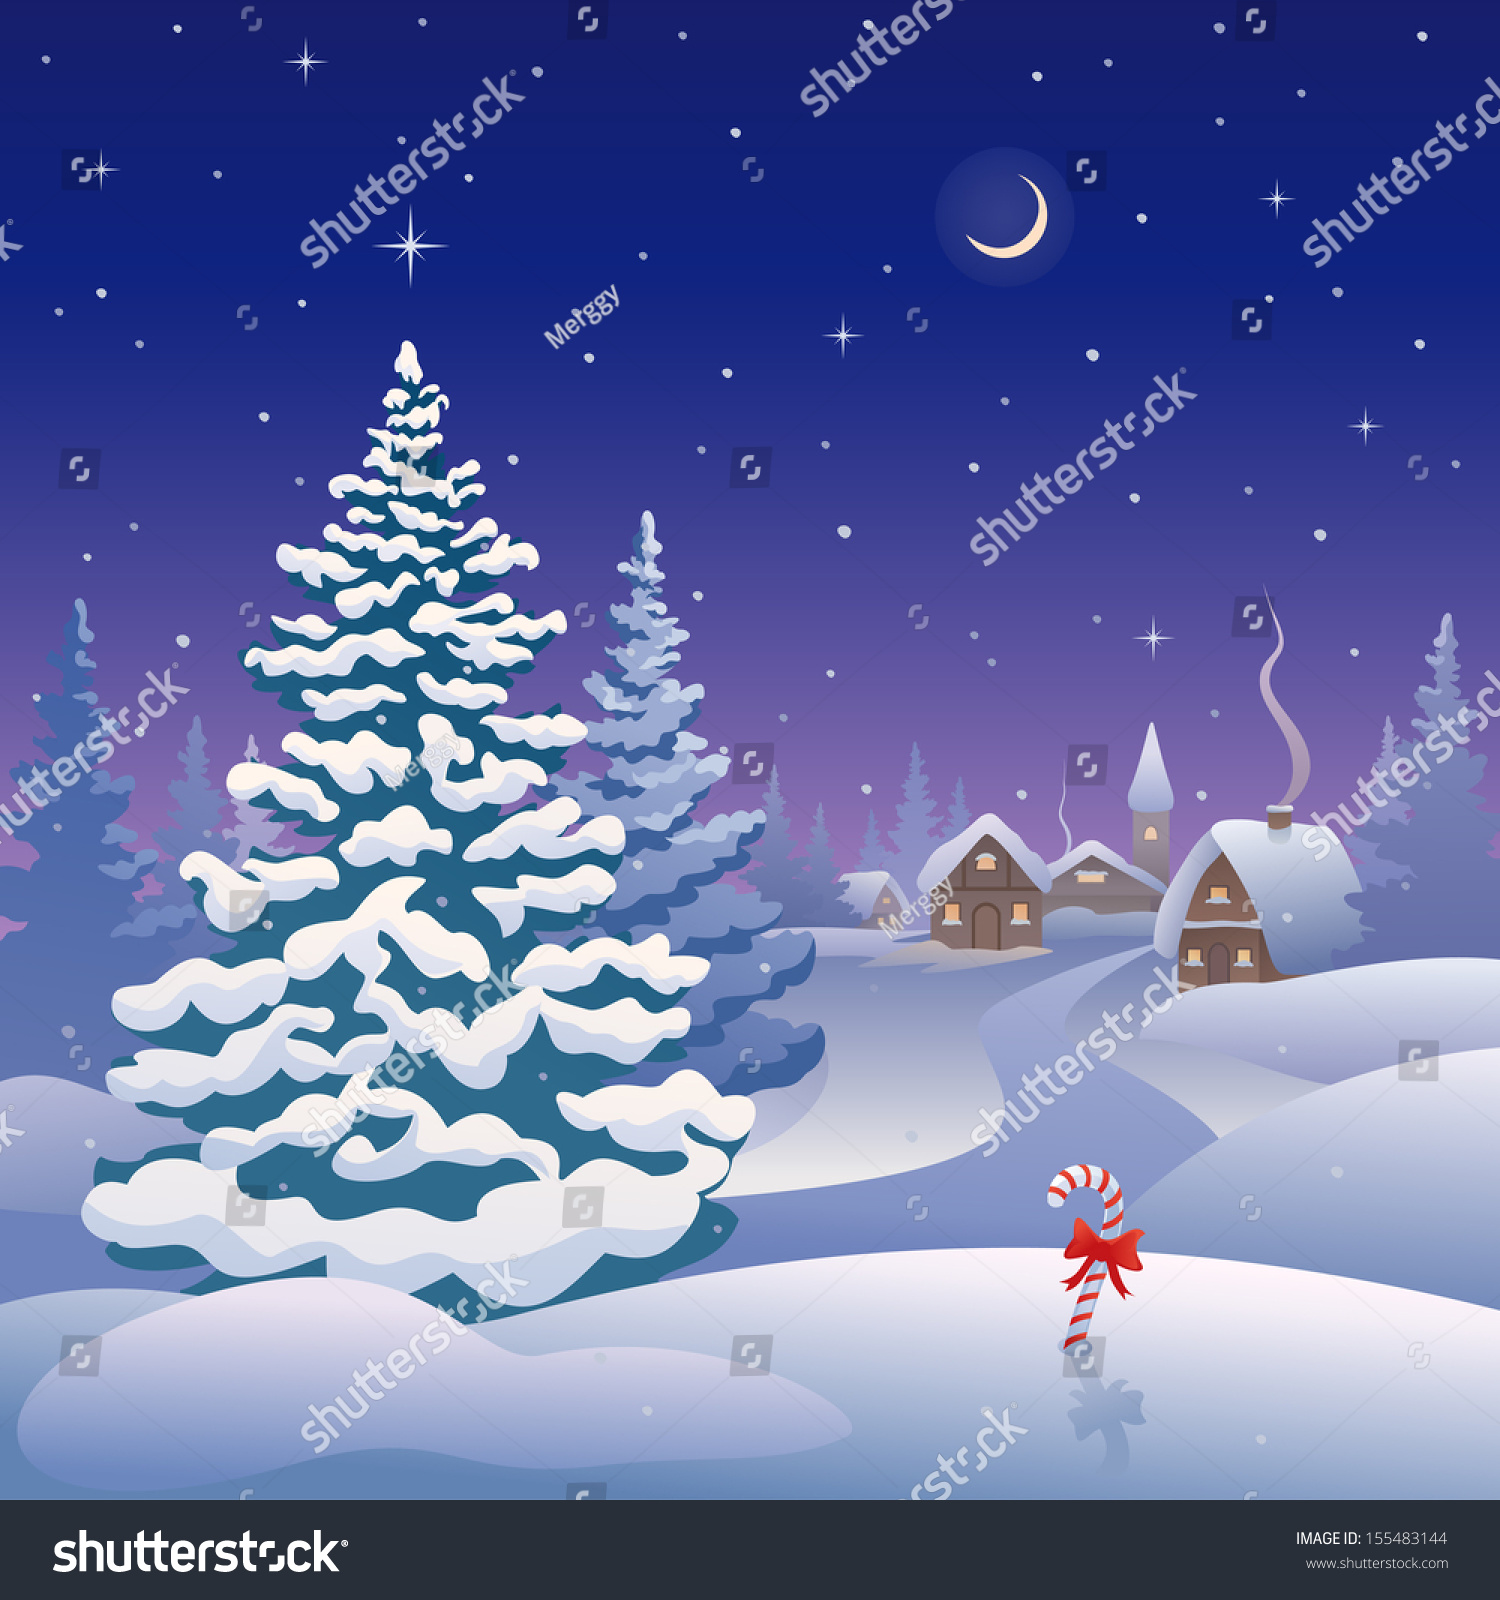 Mma Salon De Provence Clip Art Illustration Of A Christmas Village In The Snow